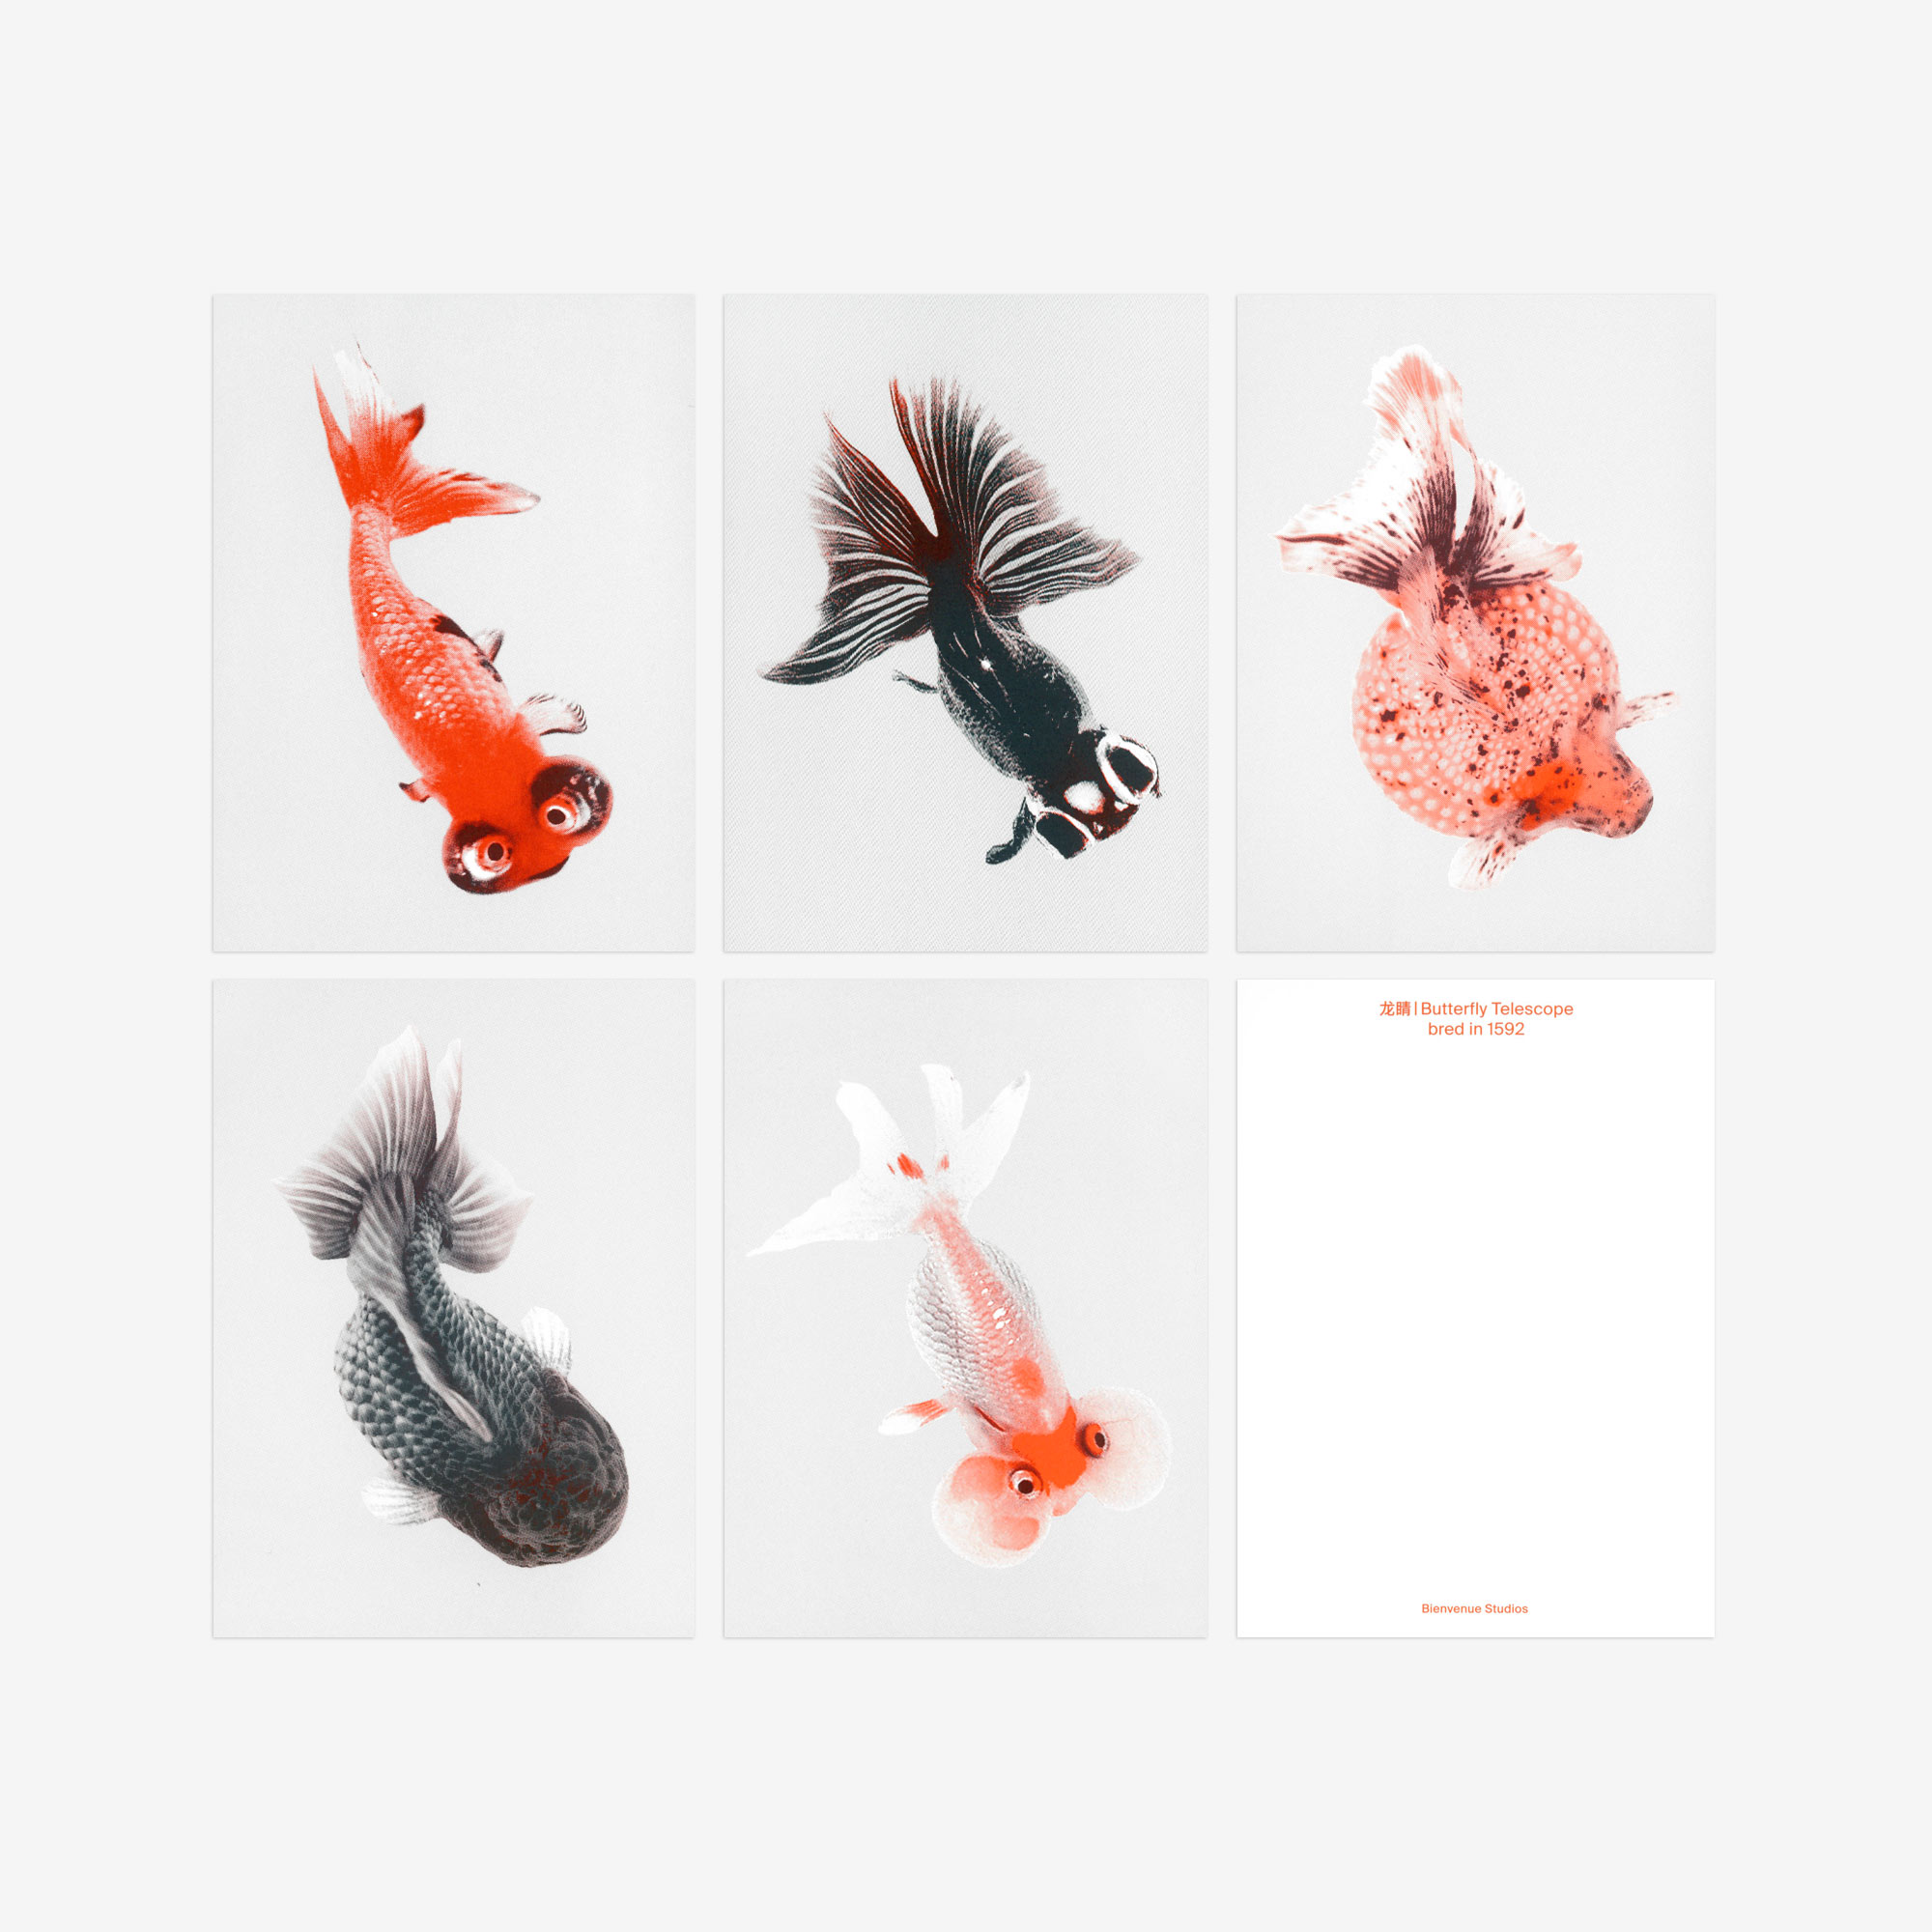 Special goldfish postcards